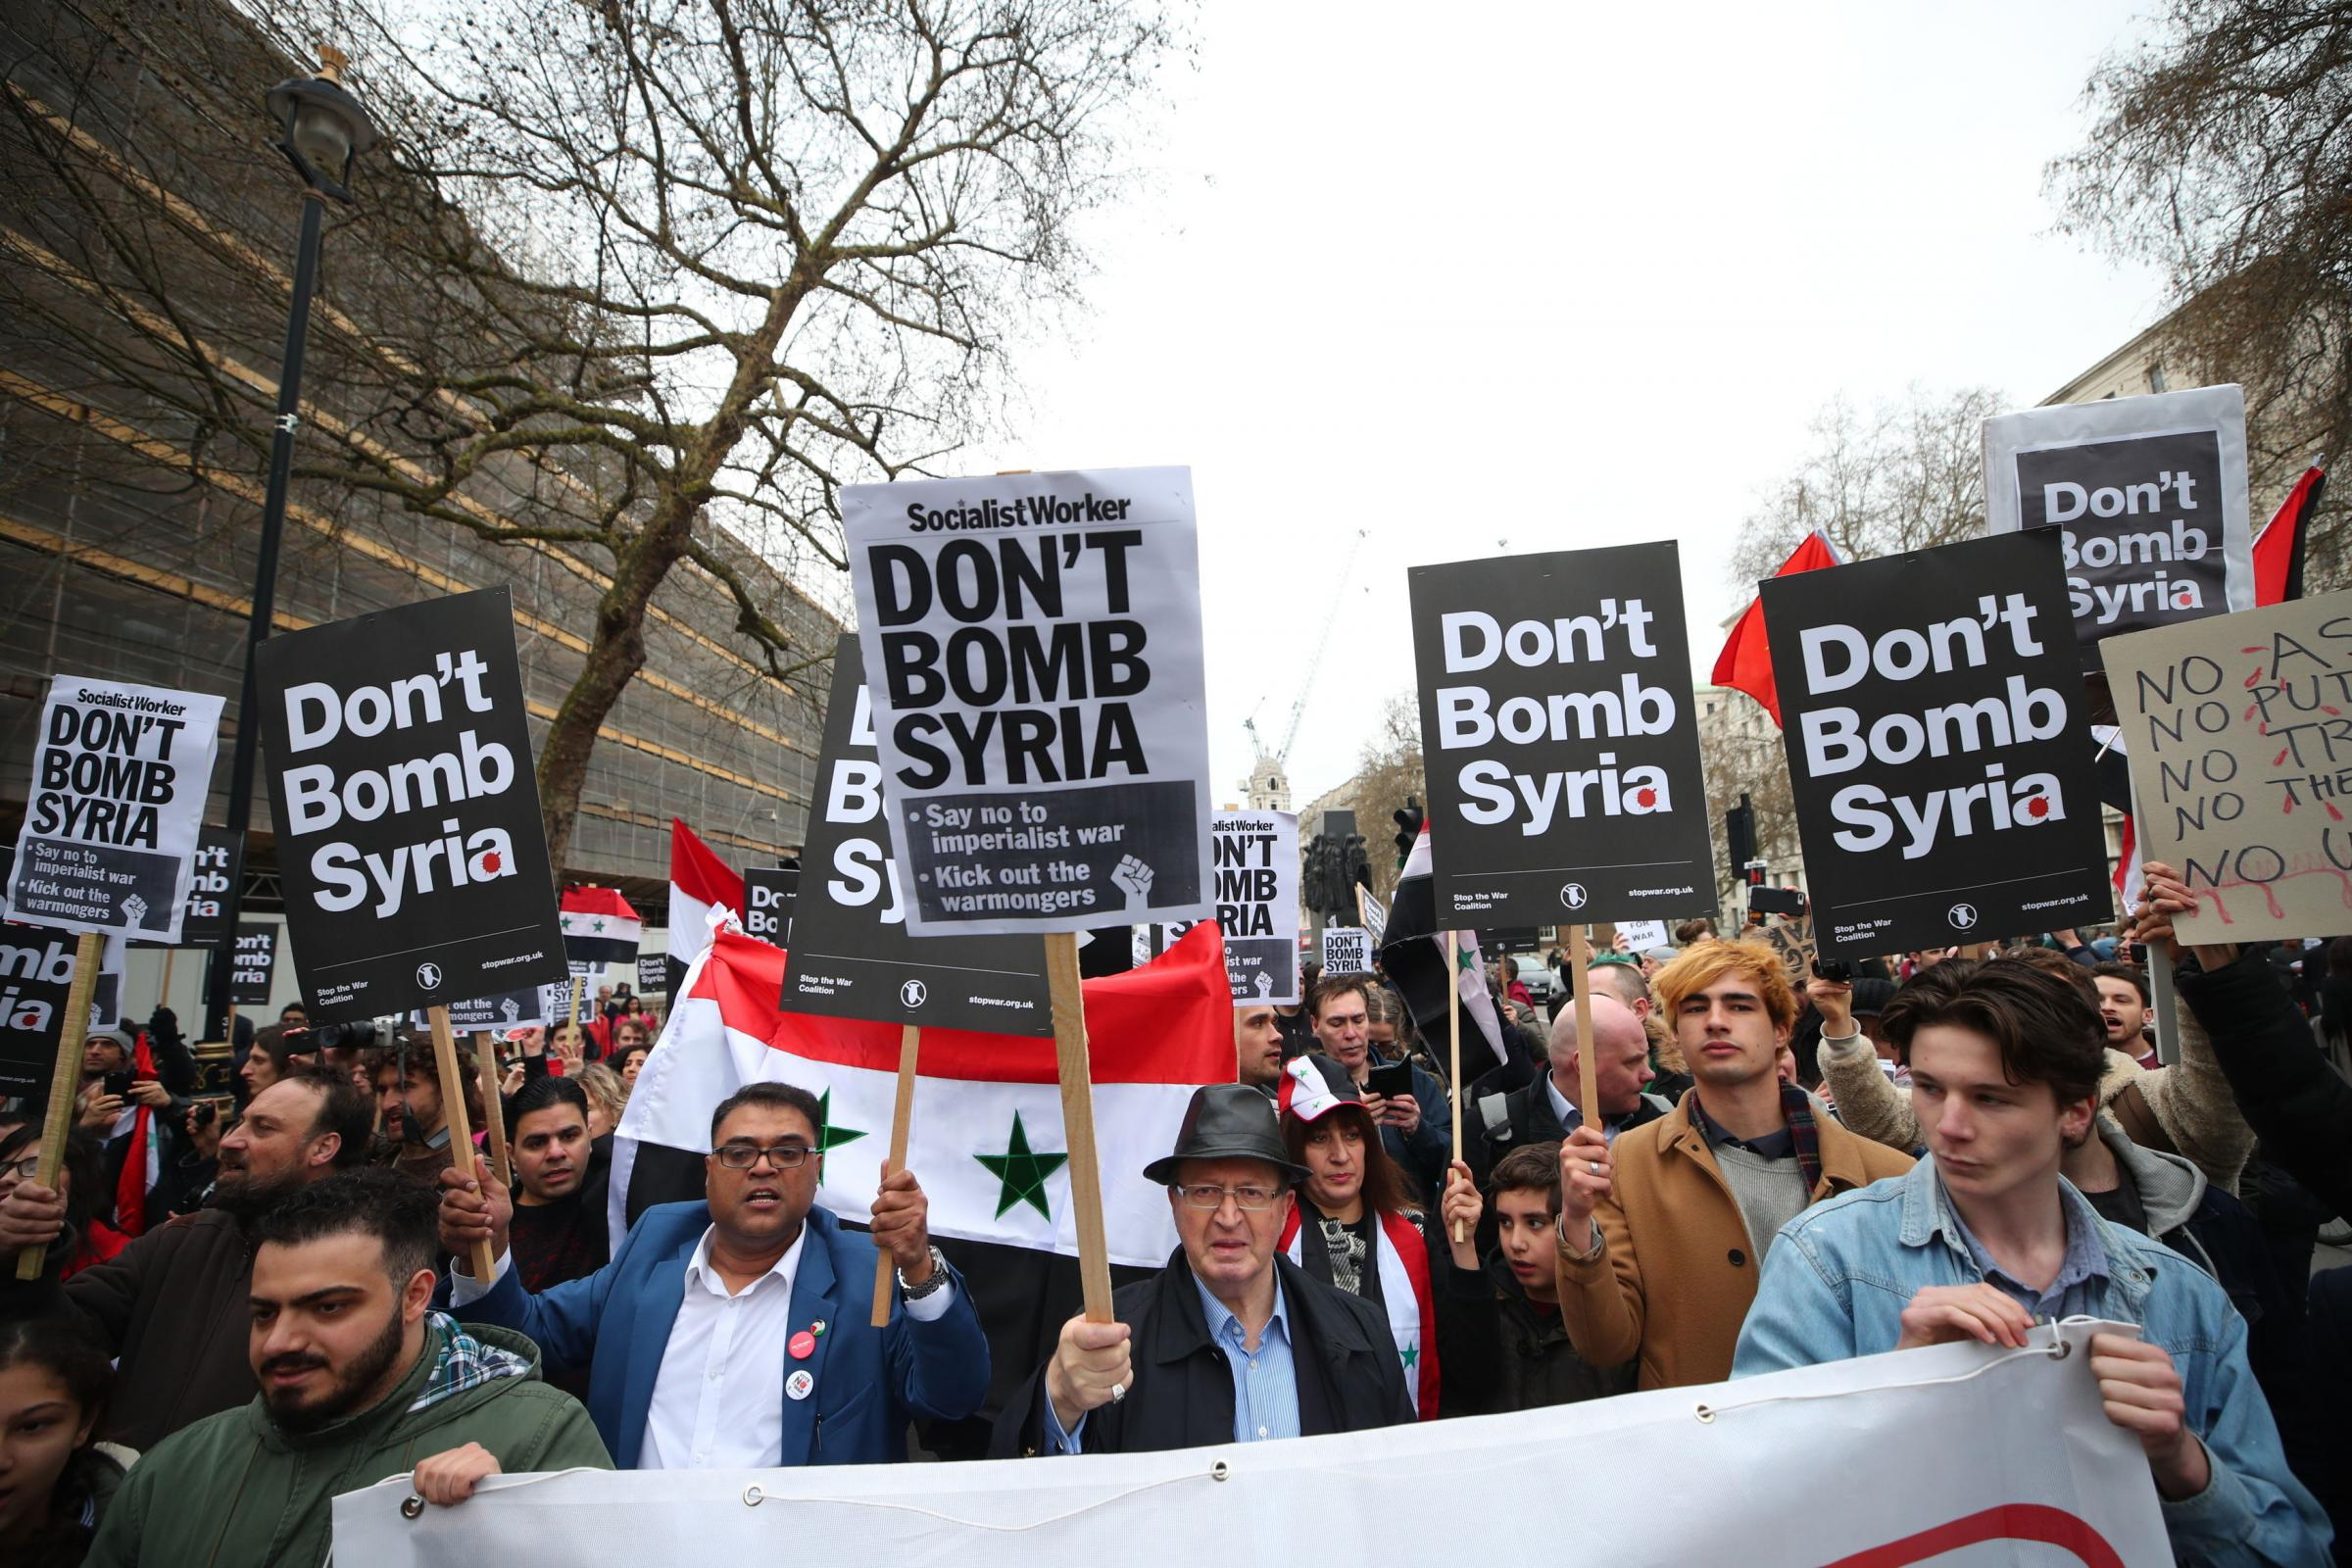 British opinion leaders question legality over strikes on Syria